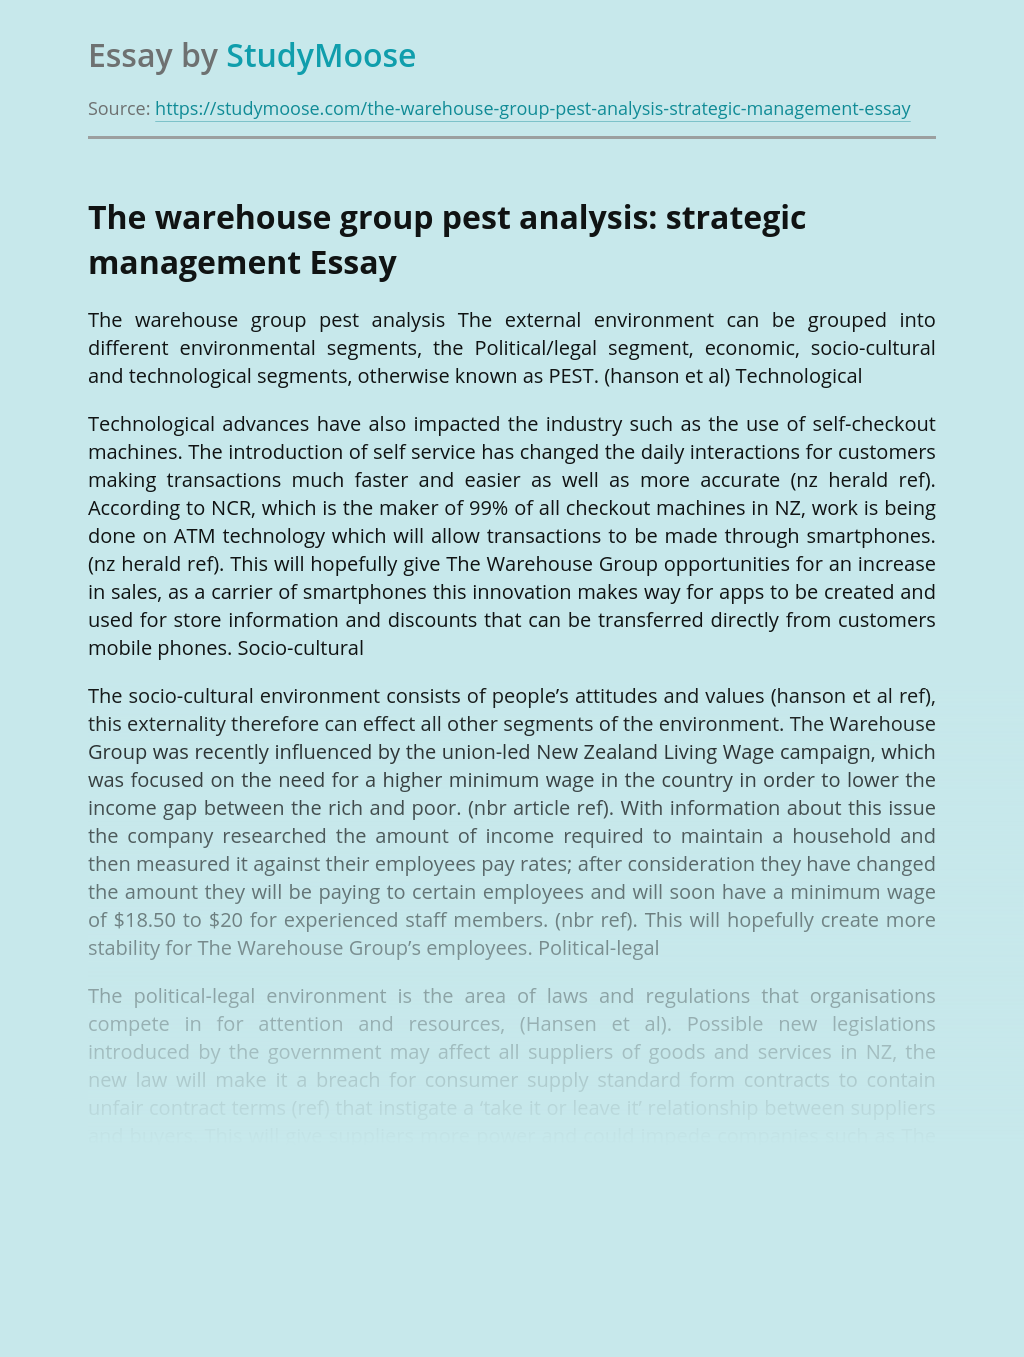 The warehouse group pest analysis: strategic management